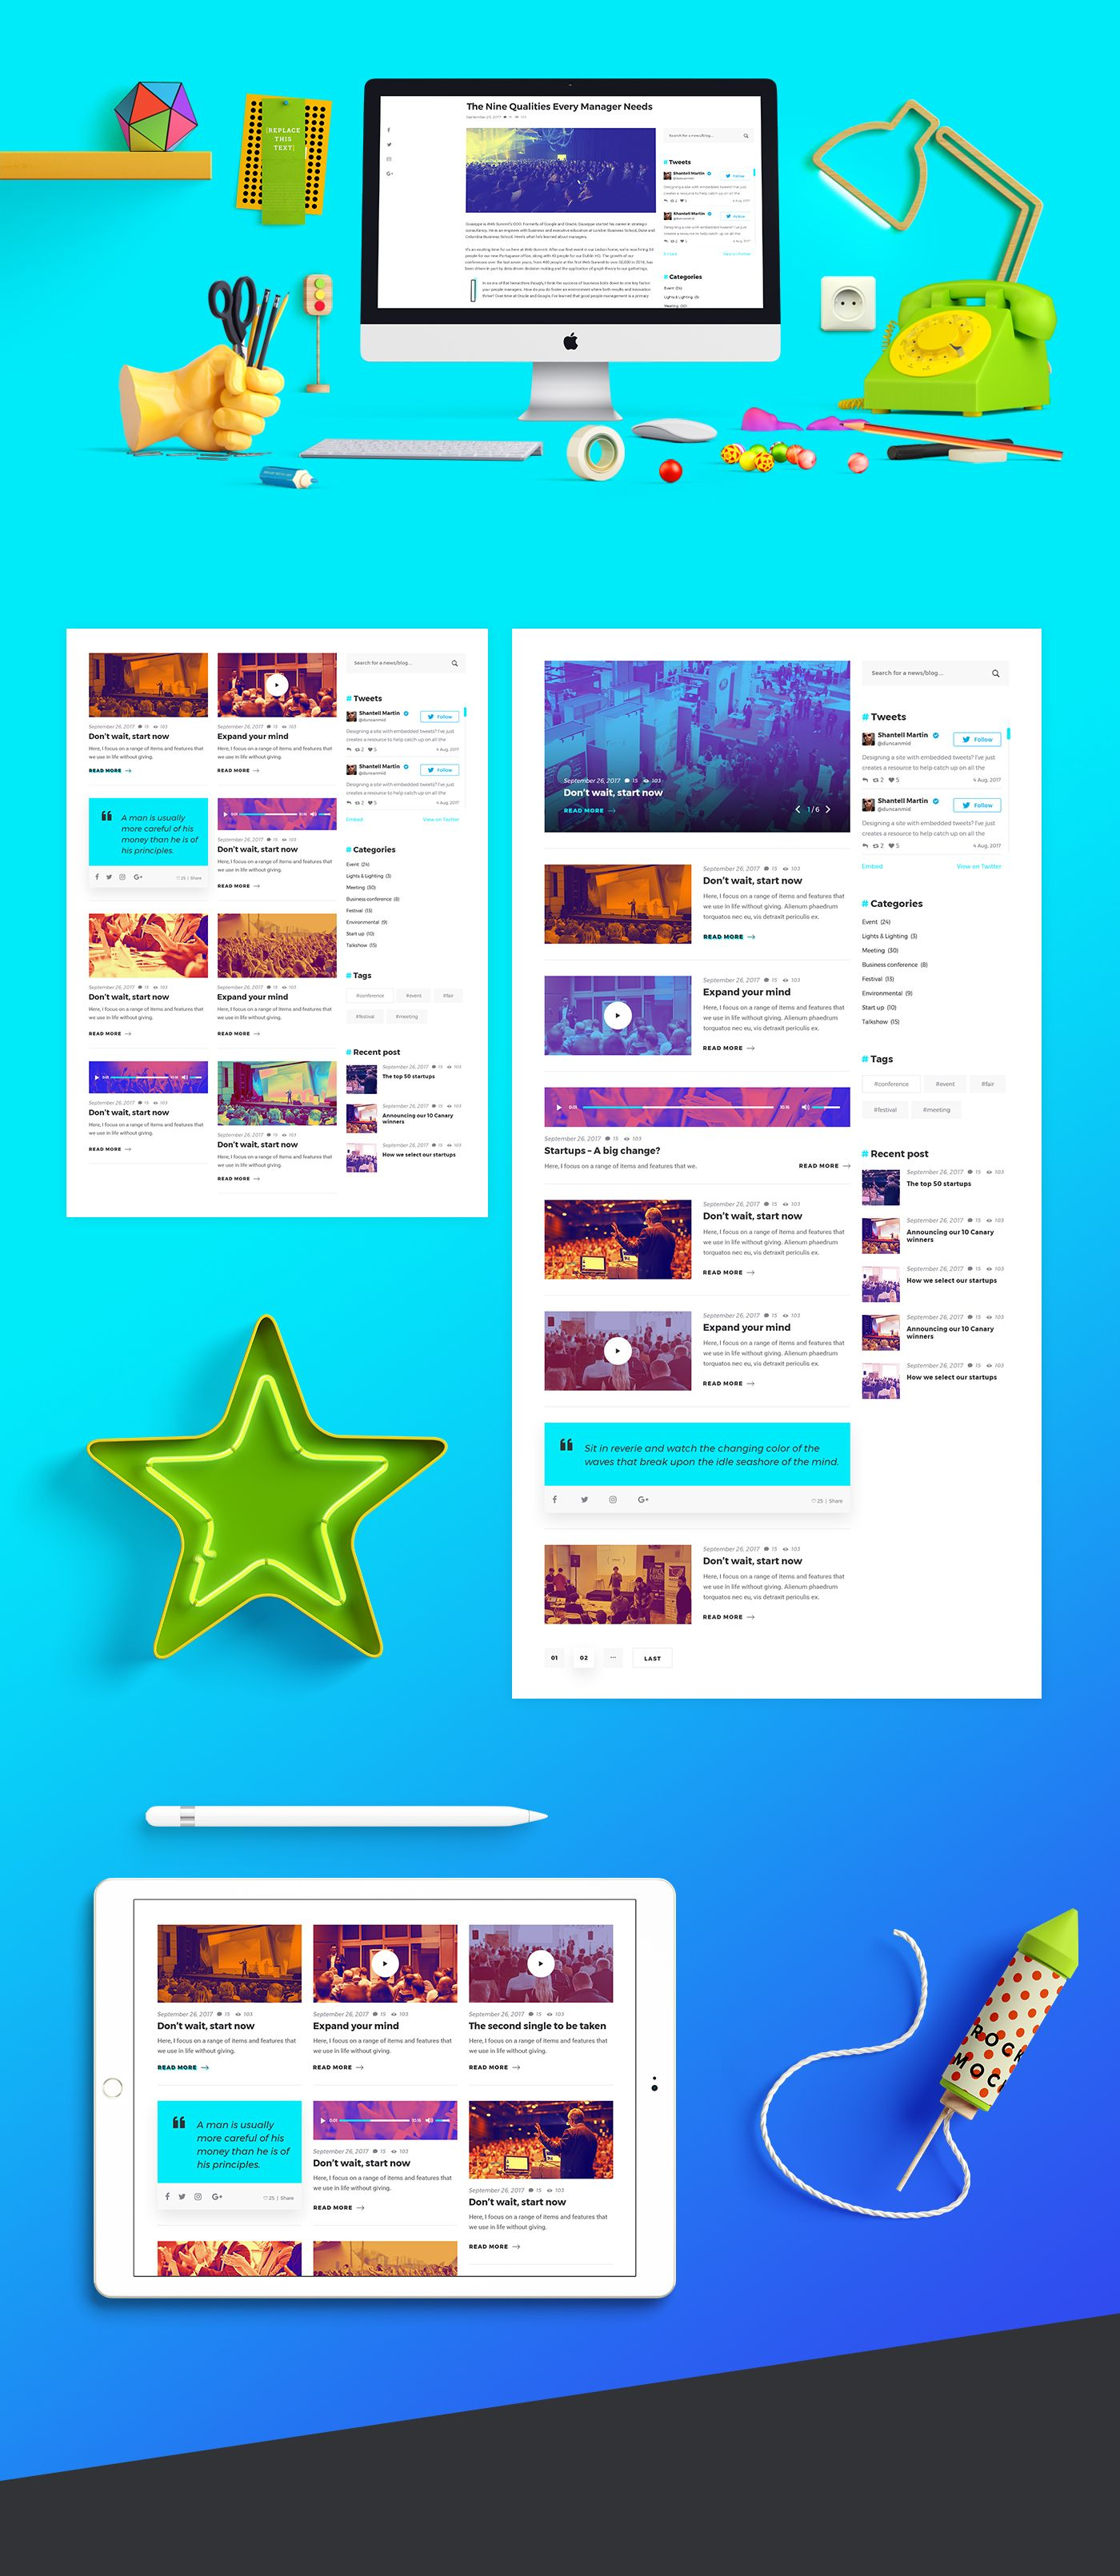 the event exhibition is modern creative colorful onepage psd